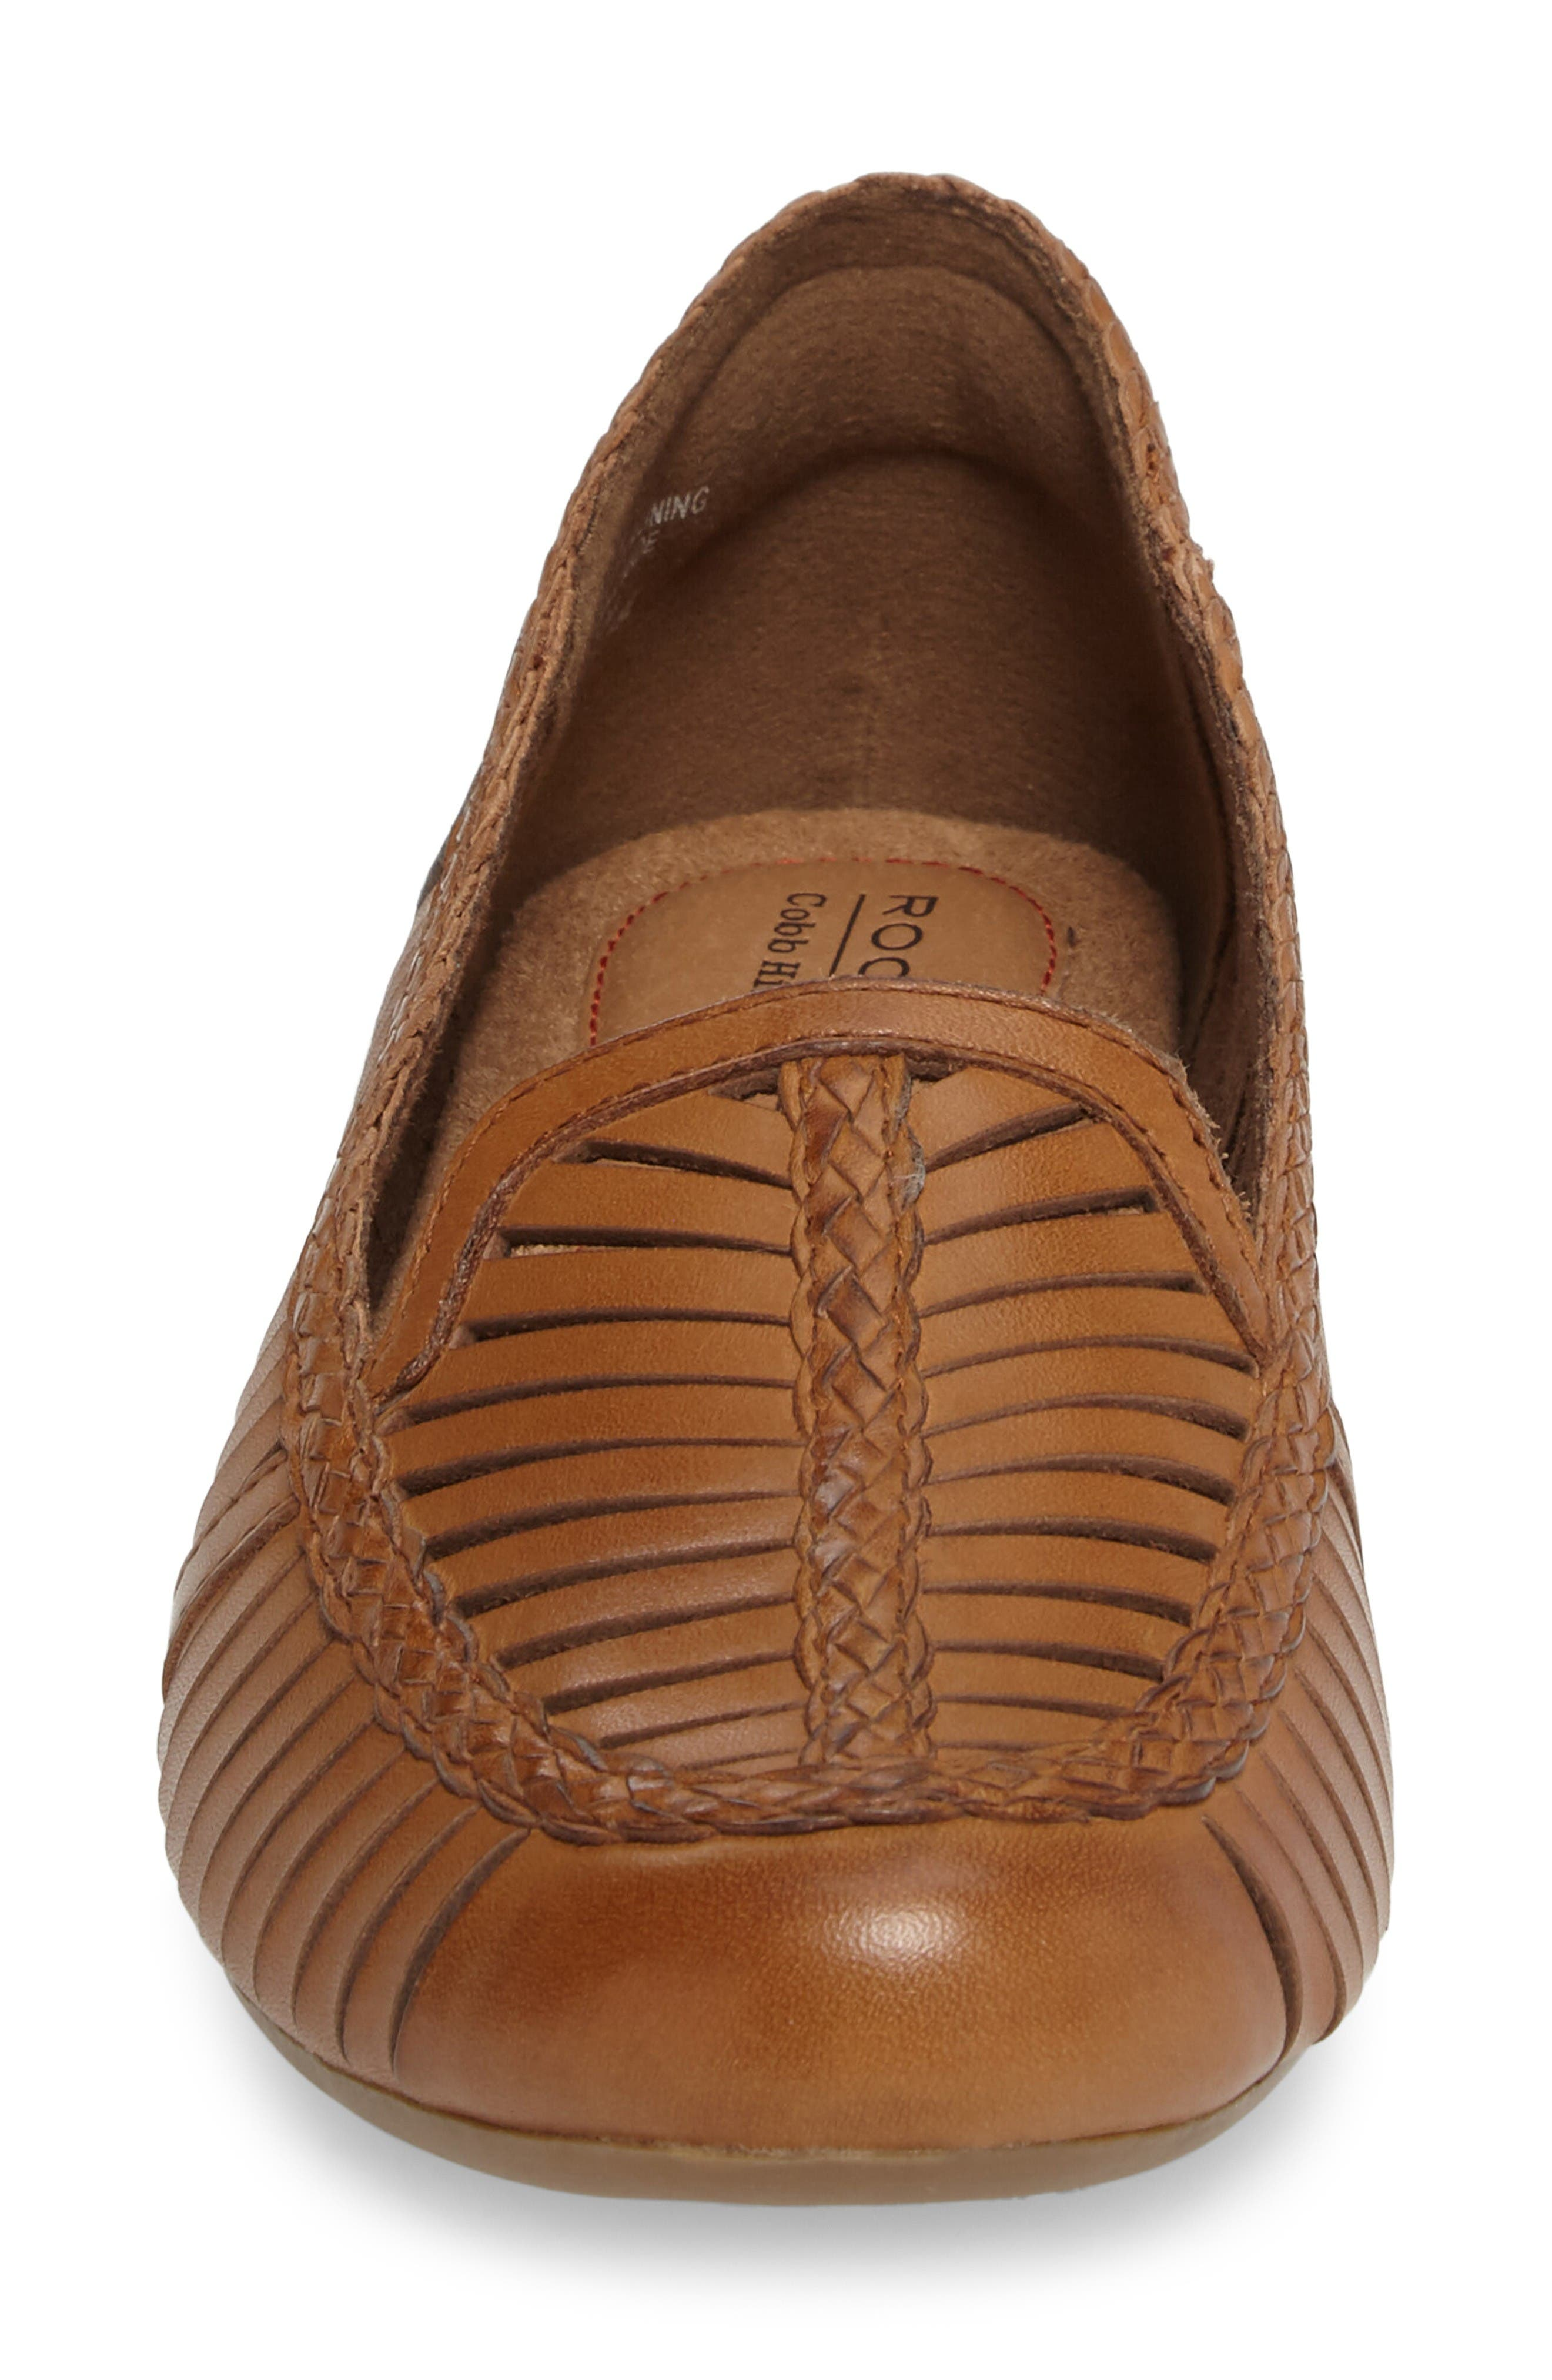 Galway Loafer,                             Alternate thumbnail 4, color,                             Tan Multi Leather